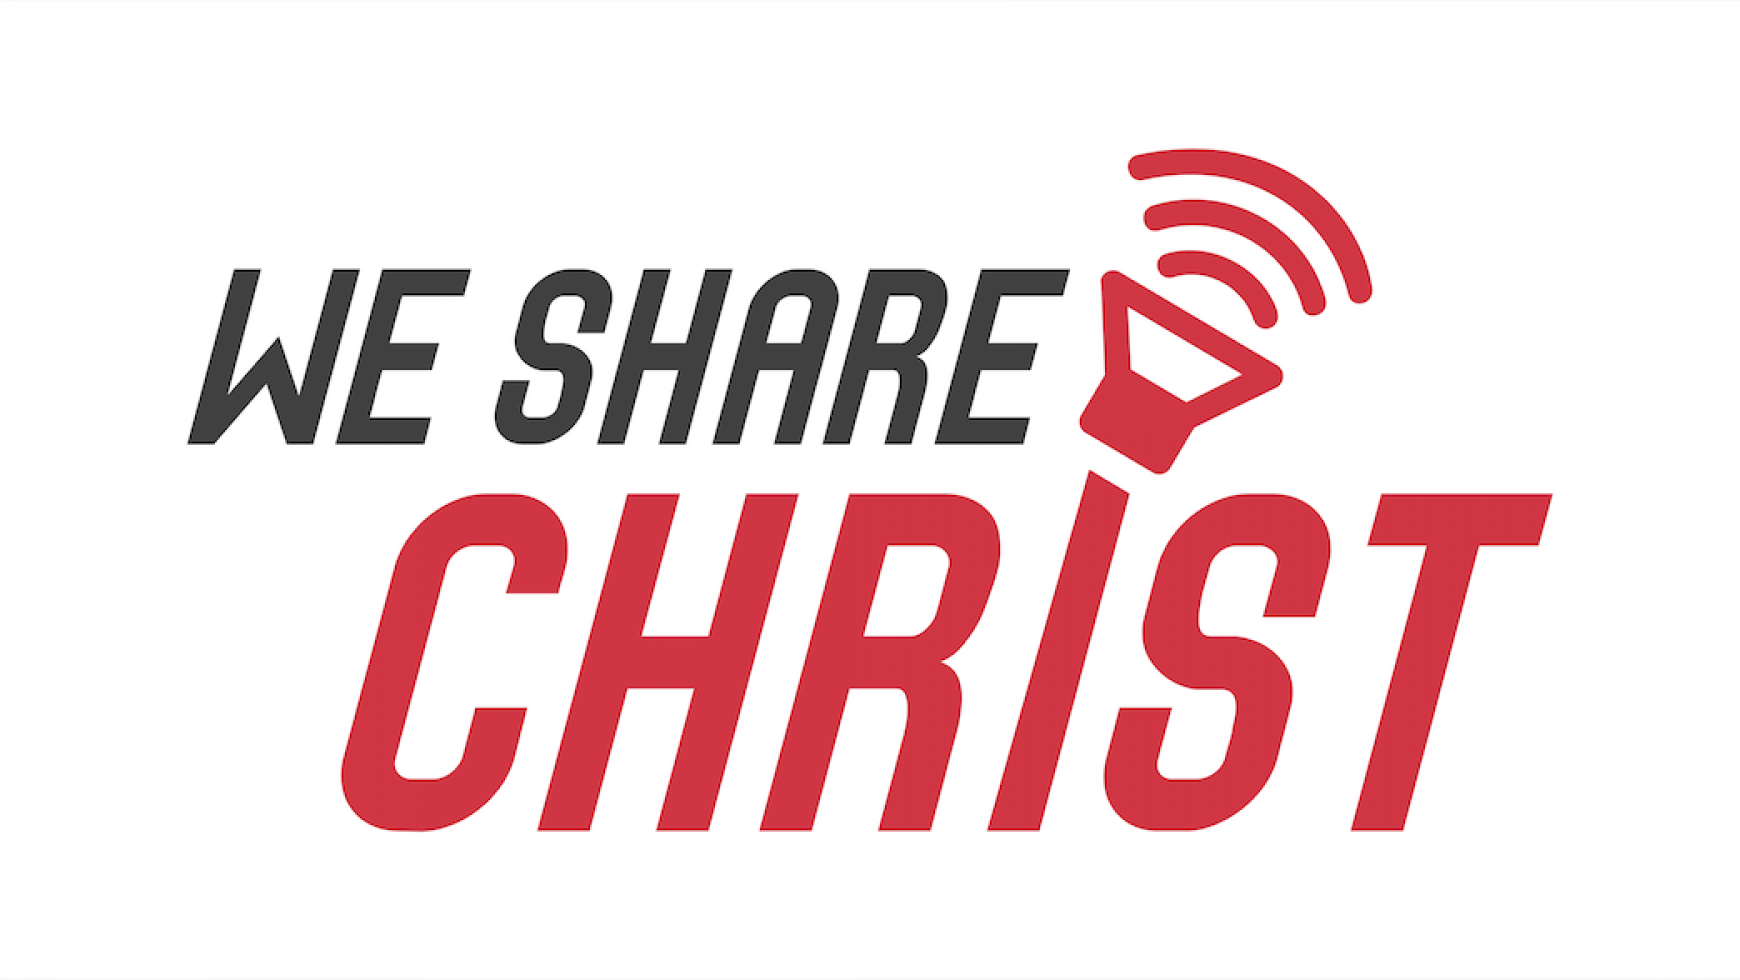 We Share Christ